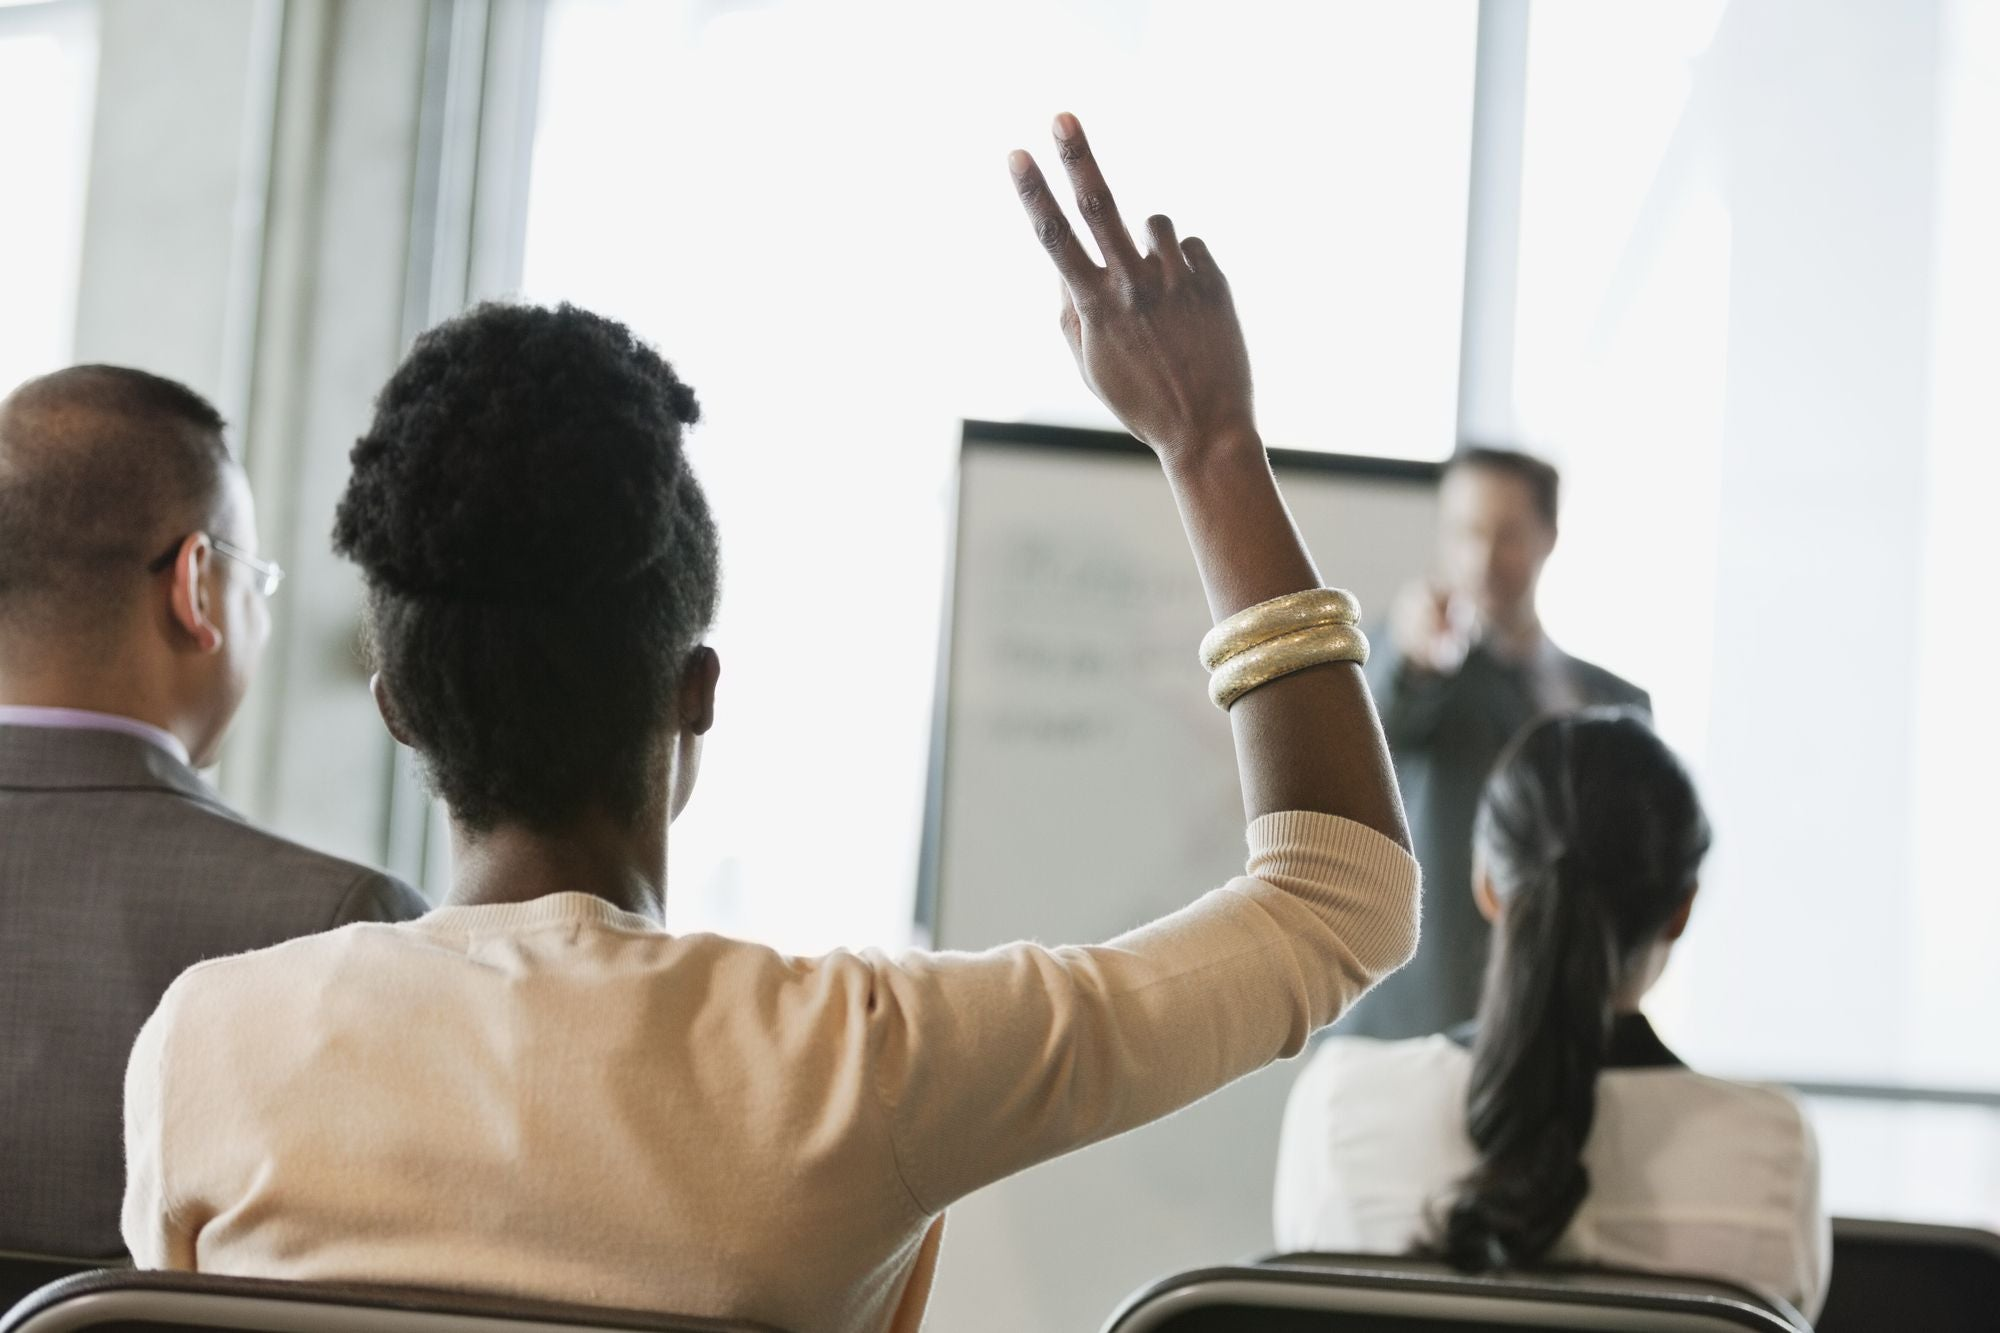 entrepreneur.com - Rashan Dixon - How to Identify and Nurture the Leadership Potential of Your Employees